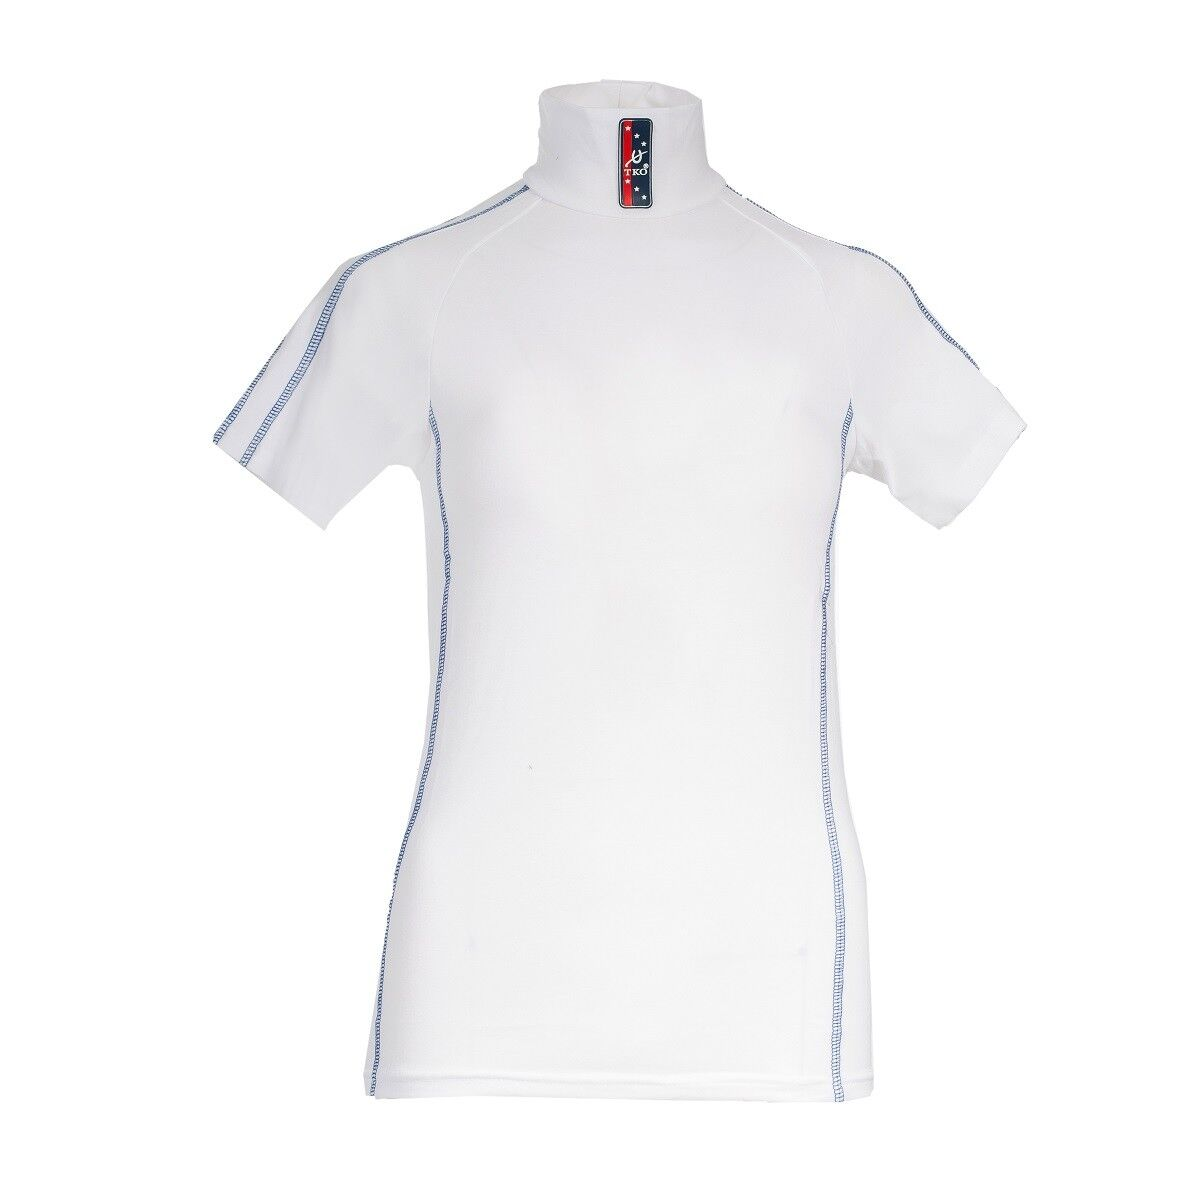 Horze Ladies Women's  White TKO Cotton Stretch English Riding Short Sleeve Shirt  the newest brands outlet online